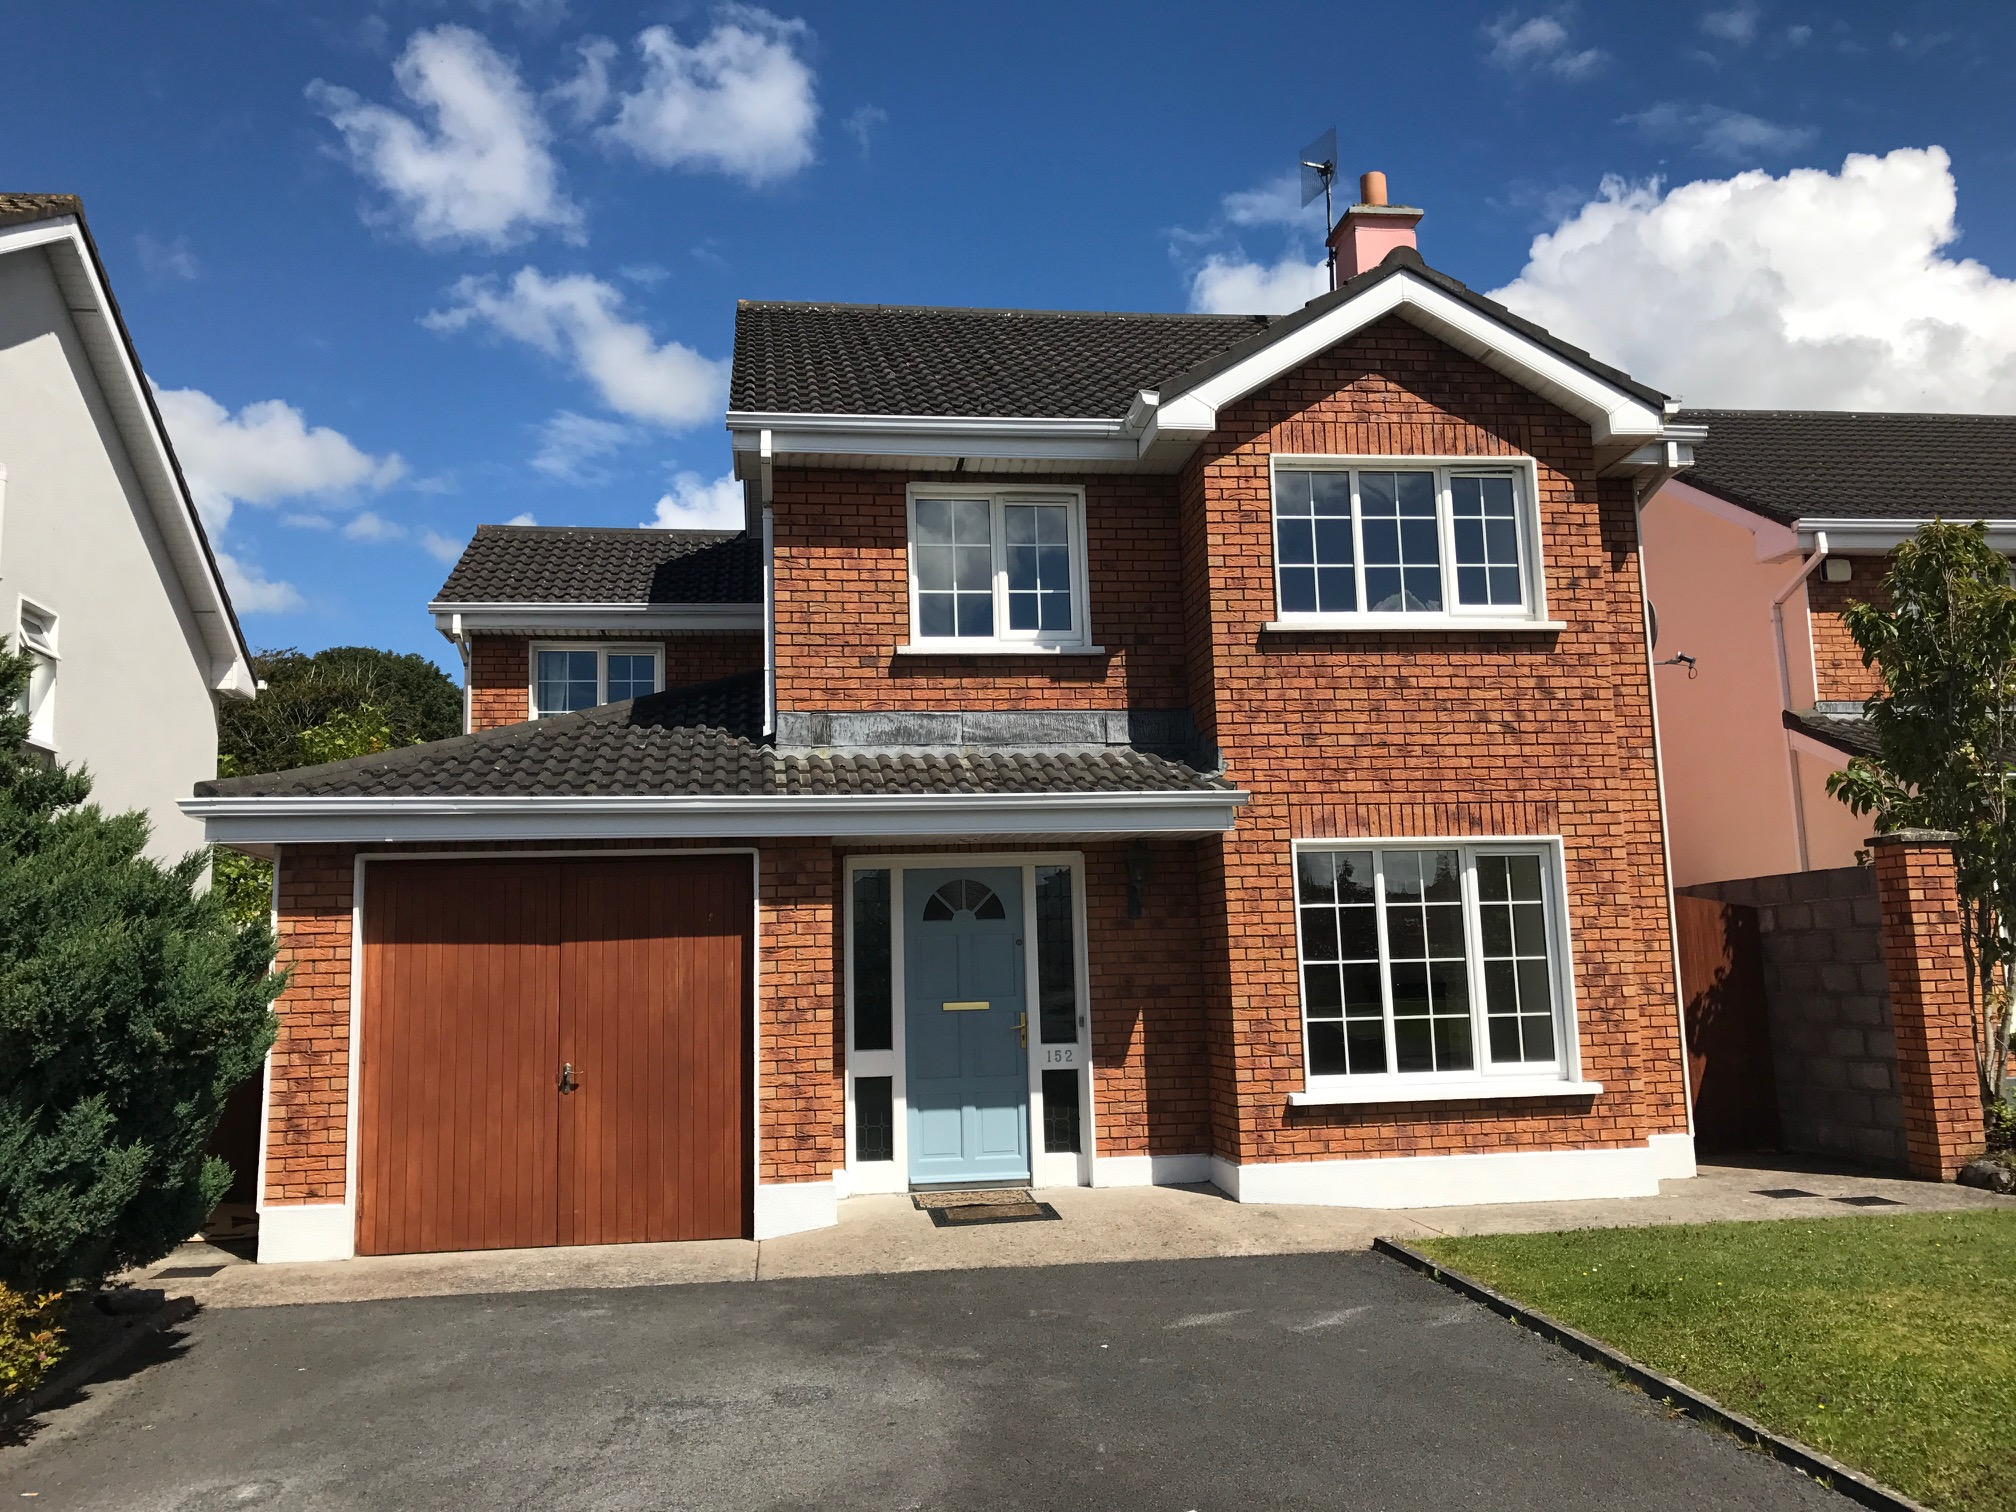 152 Bluebell Woods, Maree road, Oranmore, Co. Galway